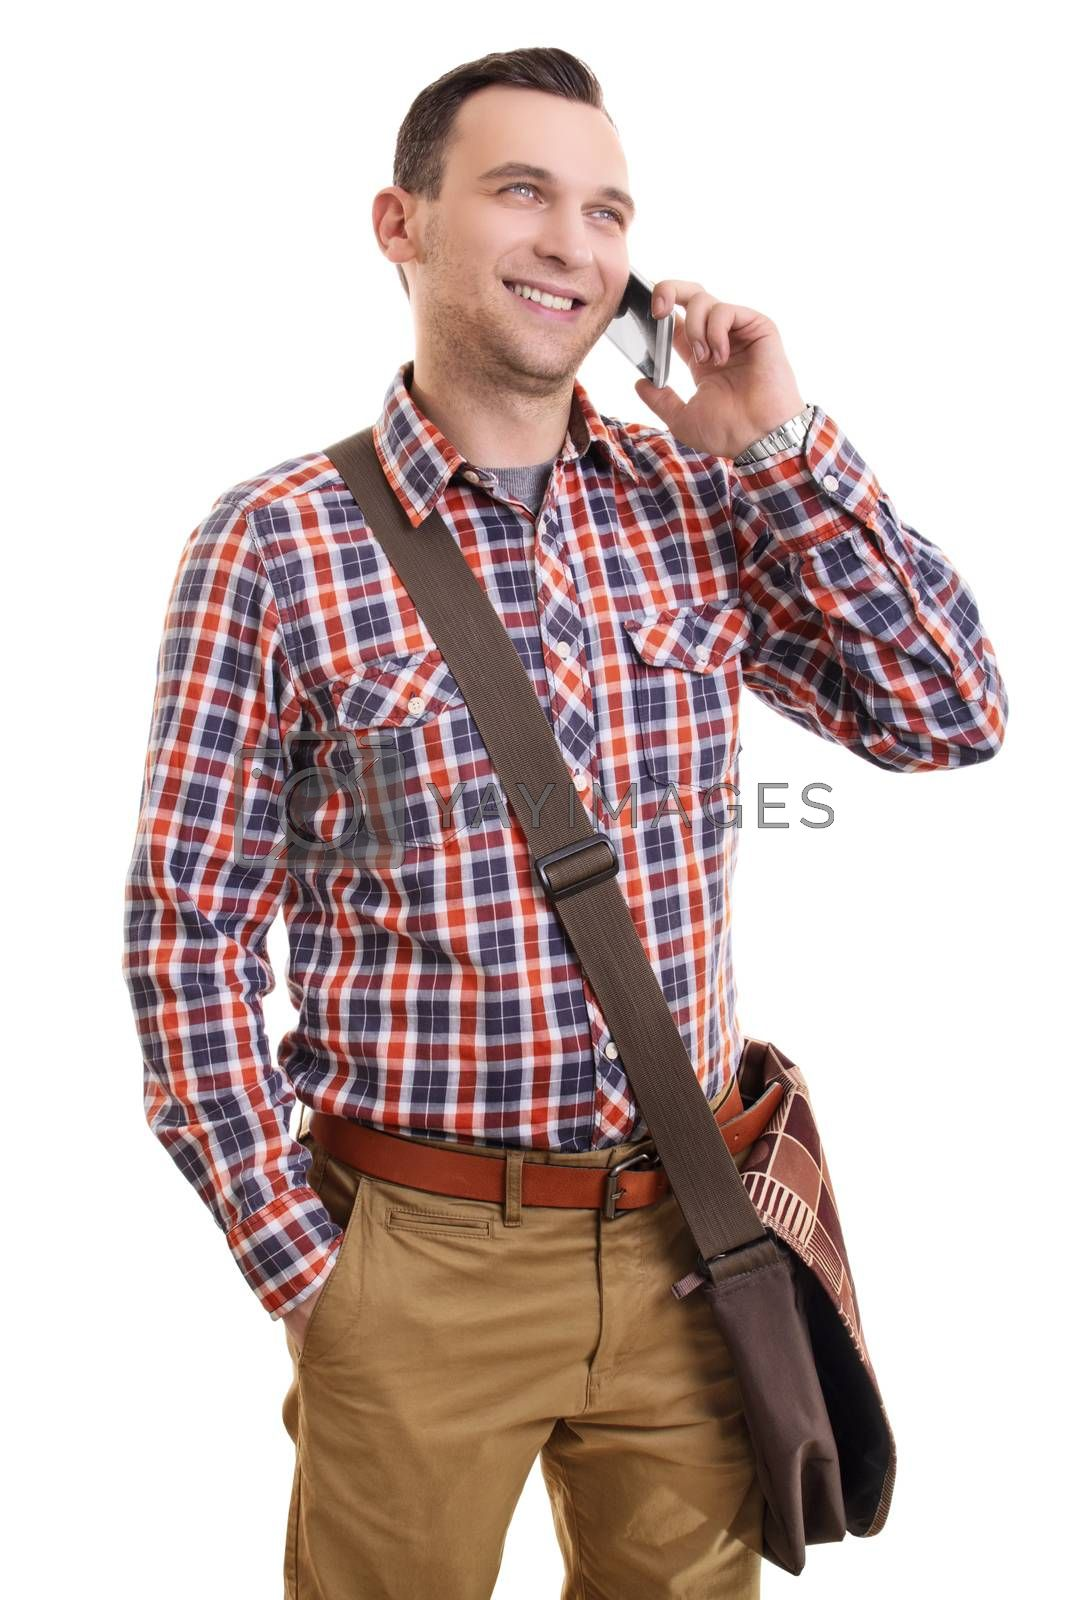 Communication concept. Portrait of a handsome smiling casual man in plaid shirt and a shoulder bag talking on mobile phone, isolated on a white background.